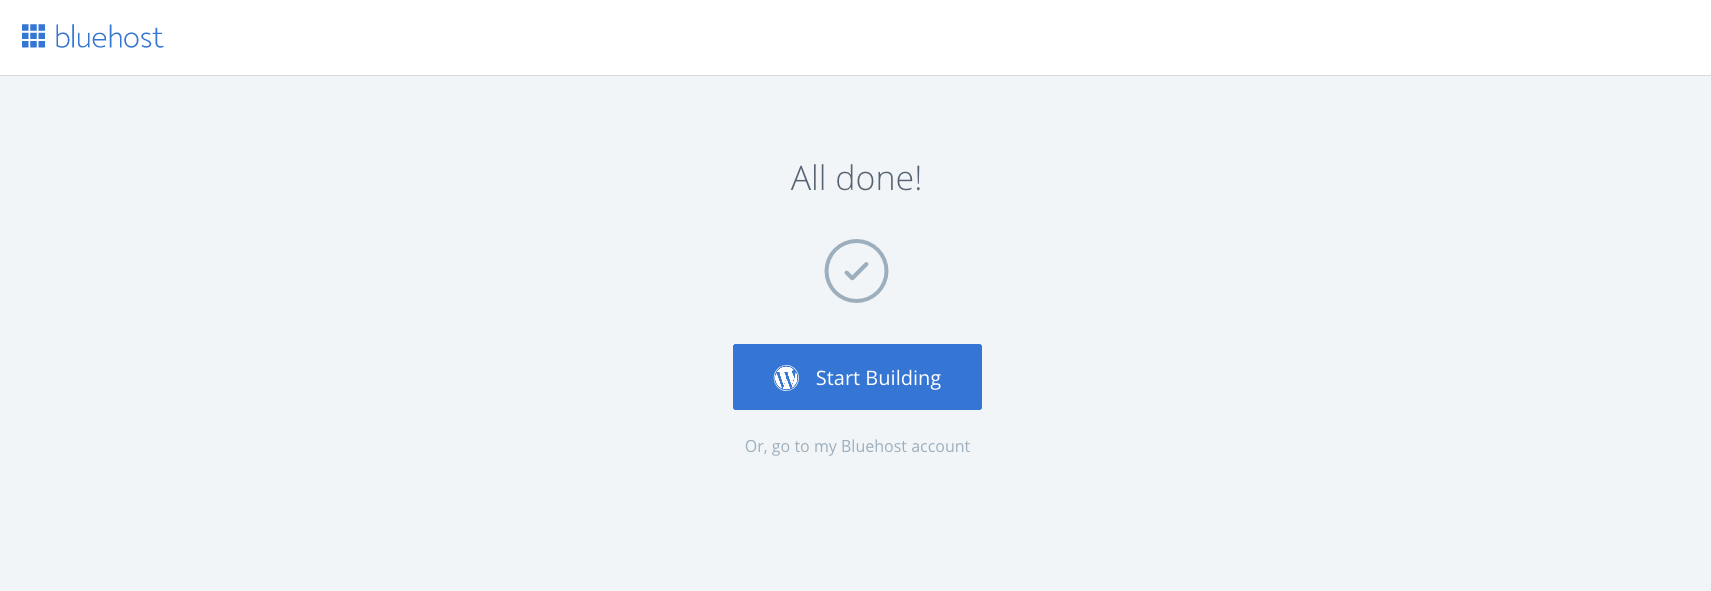 Start building in Bluehost